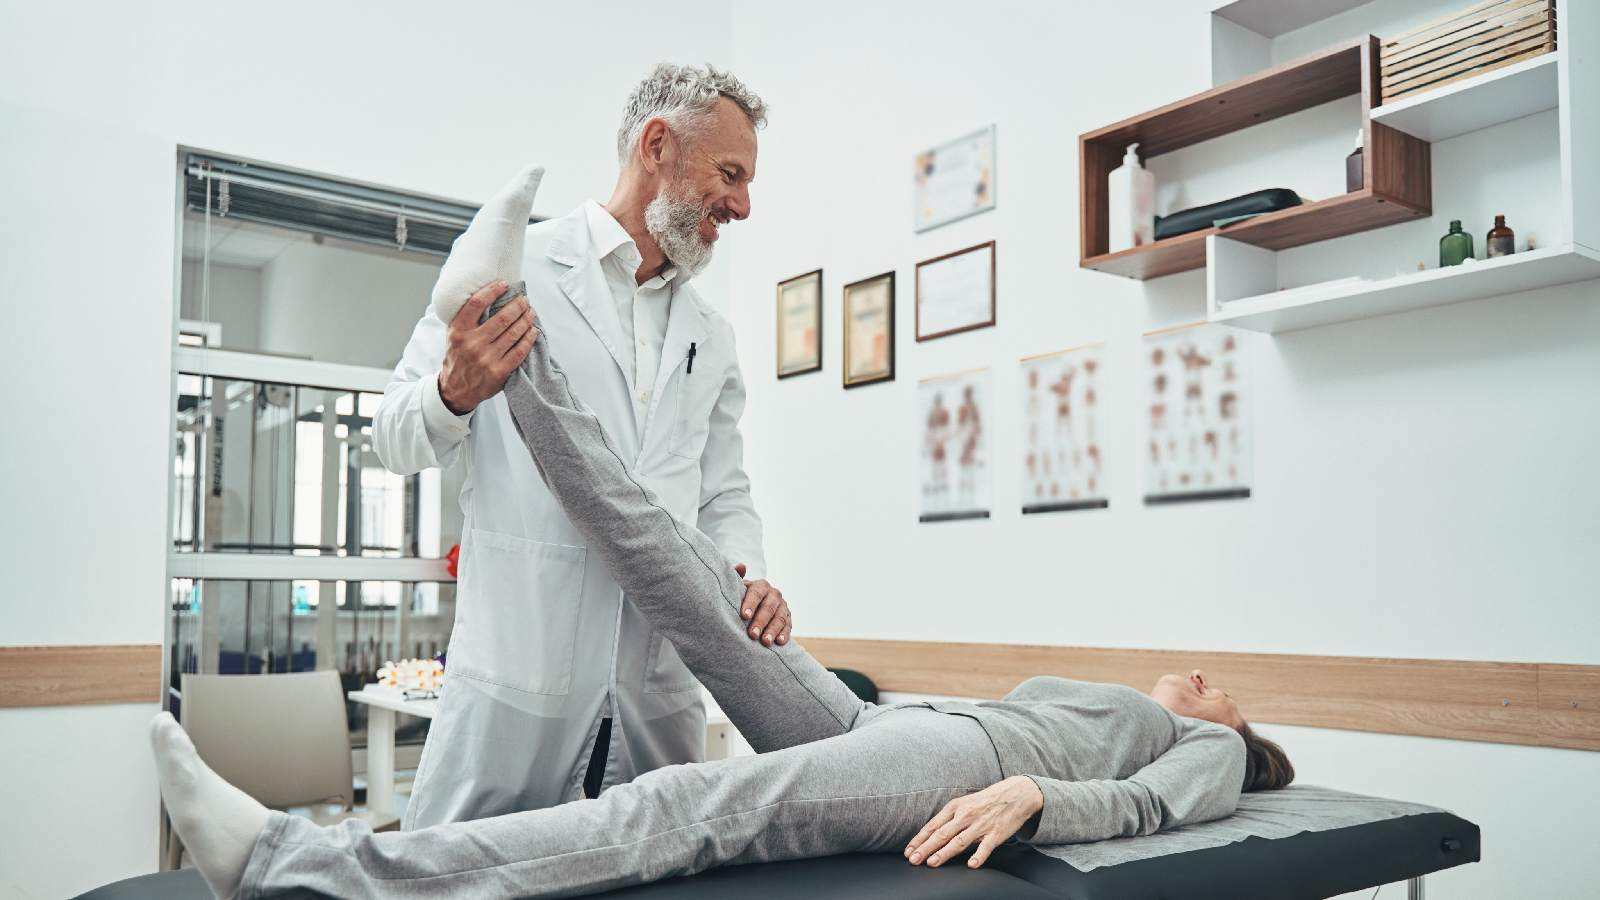 An Introduction to Clearing the Lumbar Spine : Using expert clinical reasoning skills to quickly rule lumbar spine pathology in or out when a patient has peripheral pain